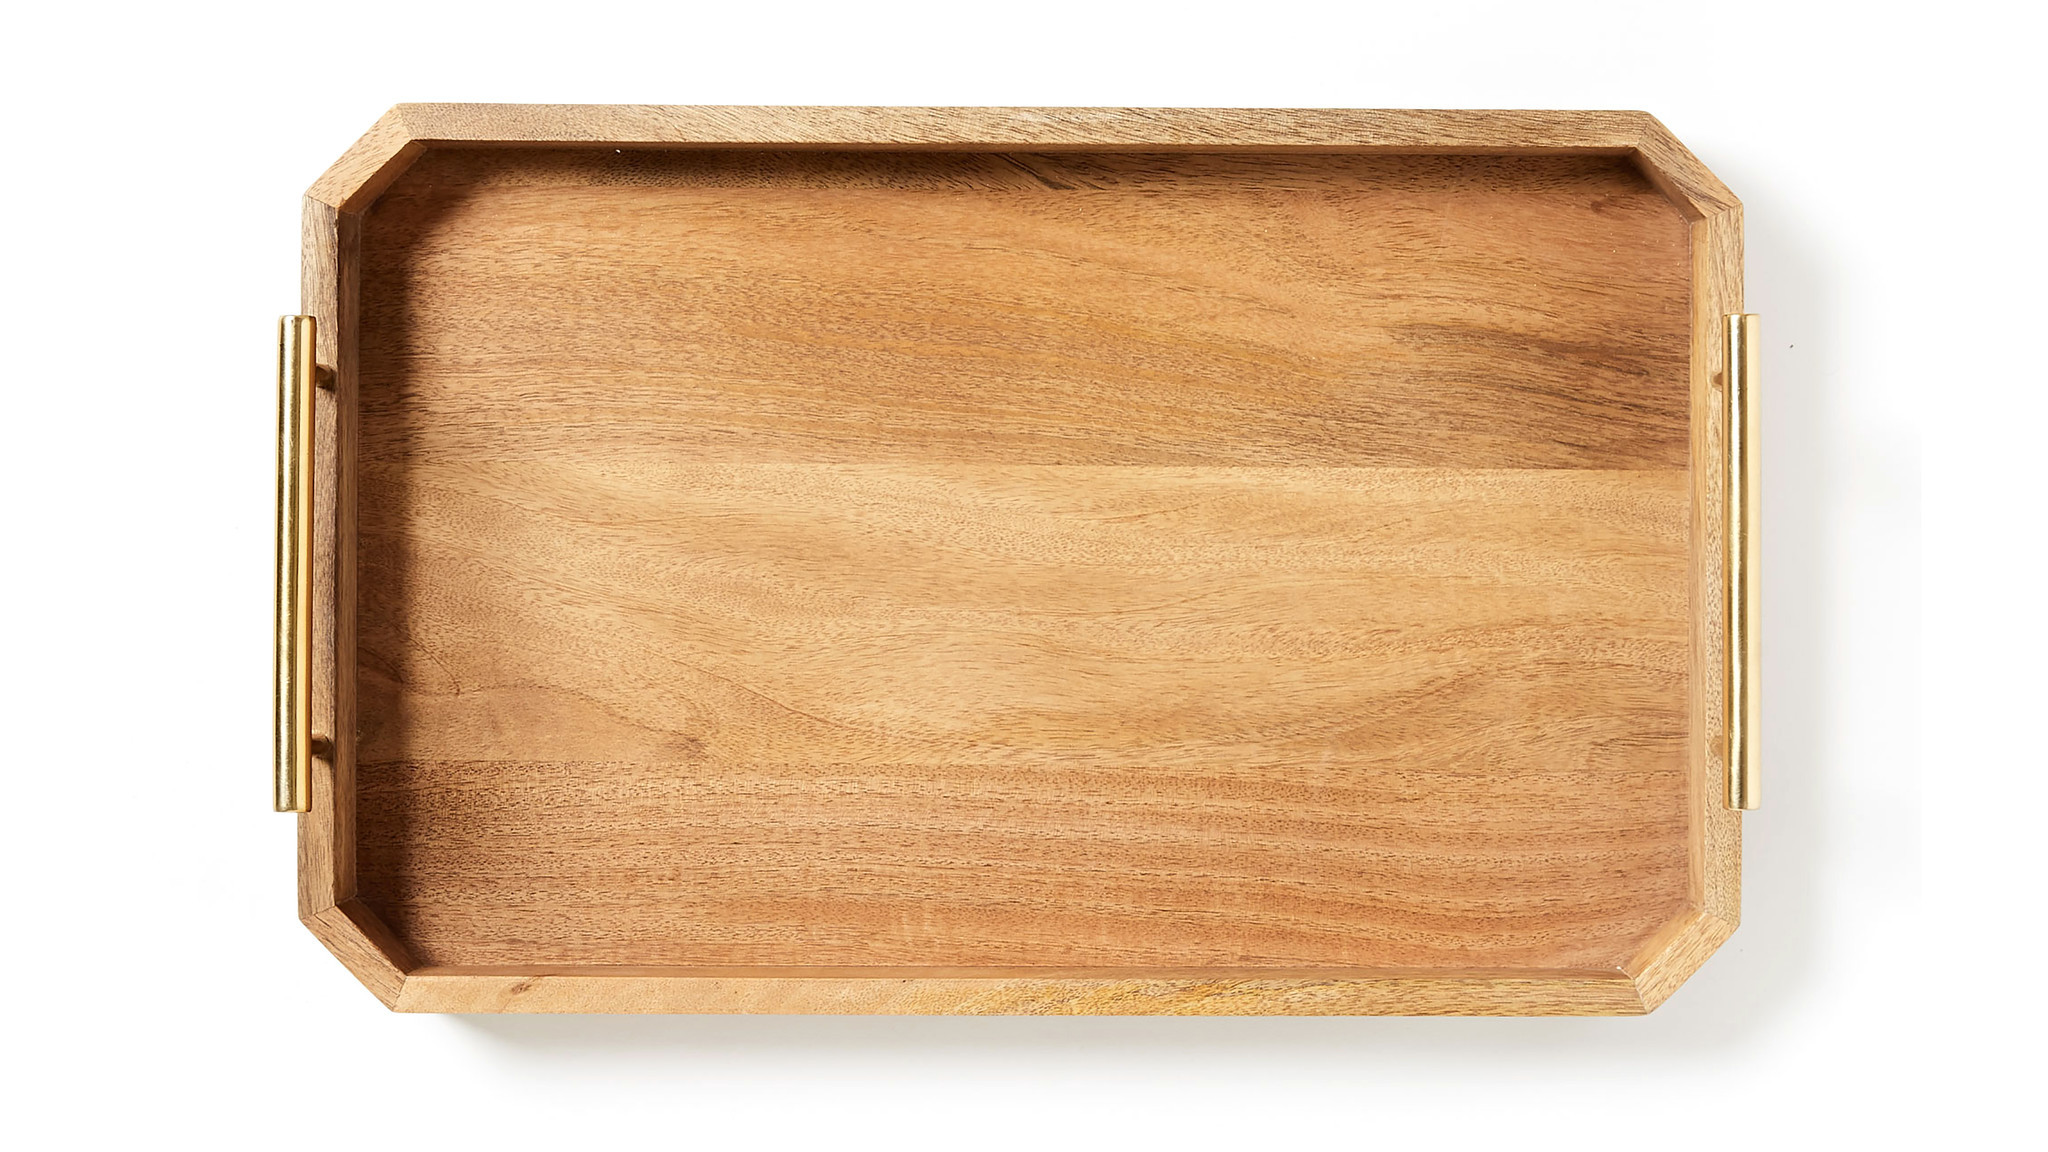 Deco Handle Tray. Made from solid mango wood, West Elm's brass-finished handled tray blends industrial- and deco-inspired style. Use this multi-tasker to organize your workstation or serve up breakfast in bed. $59 and $89. westelm.comPhoto credits: West Elm